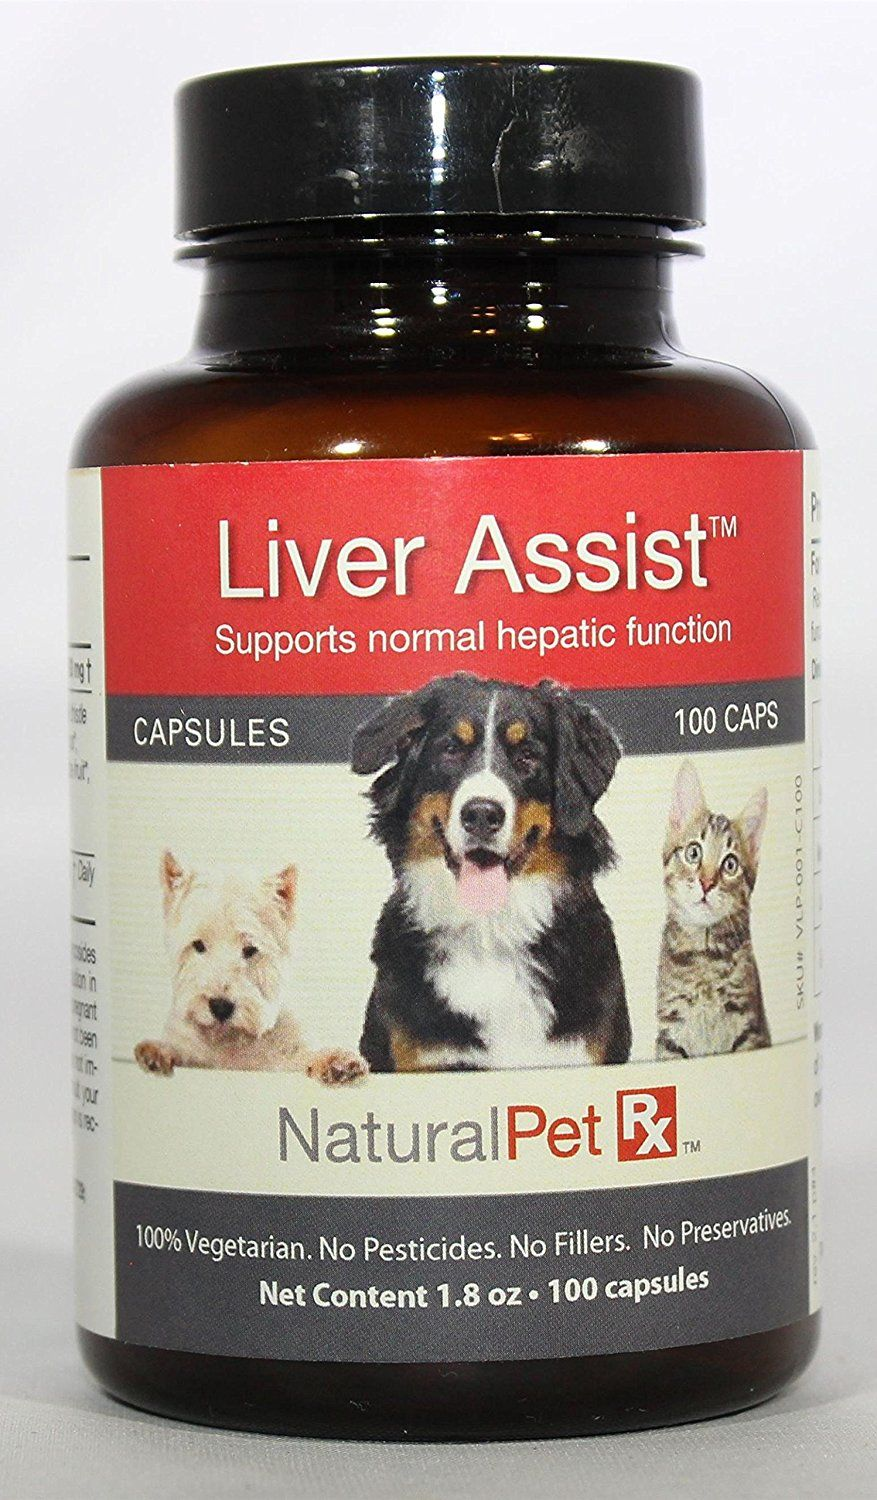 Natural Pet RX Liver Assist Hepatic Function Support (100